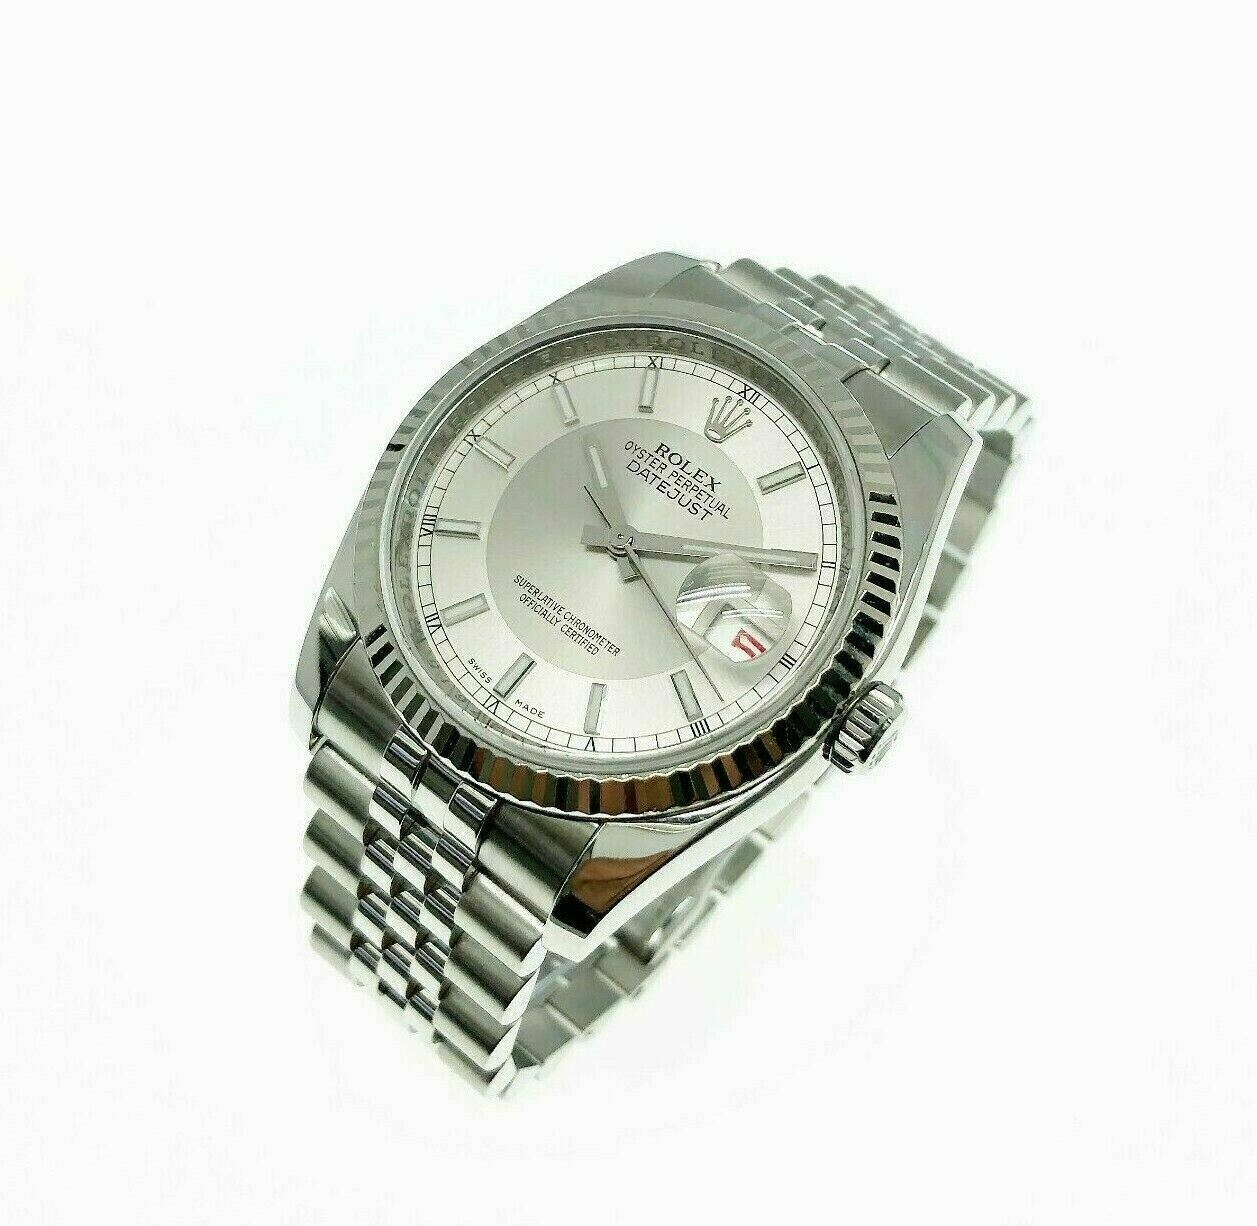 Rolex 36MM Datejust Watch 18K Gold/Stainless Steel Ref # 116234 Jubilee Band